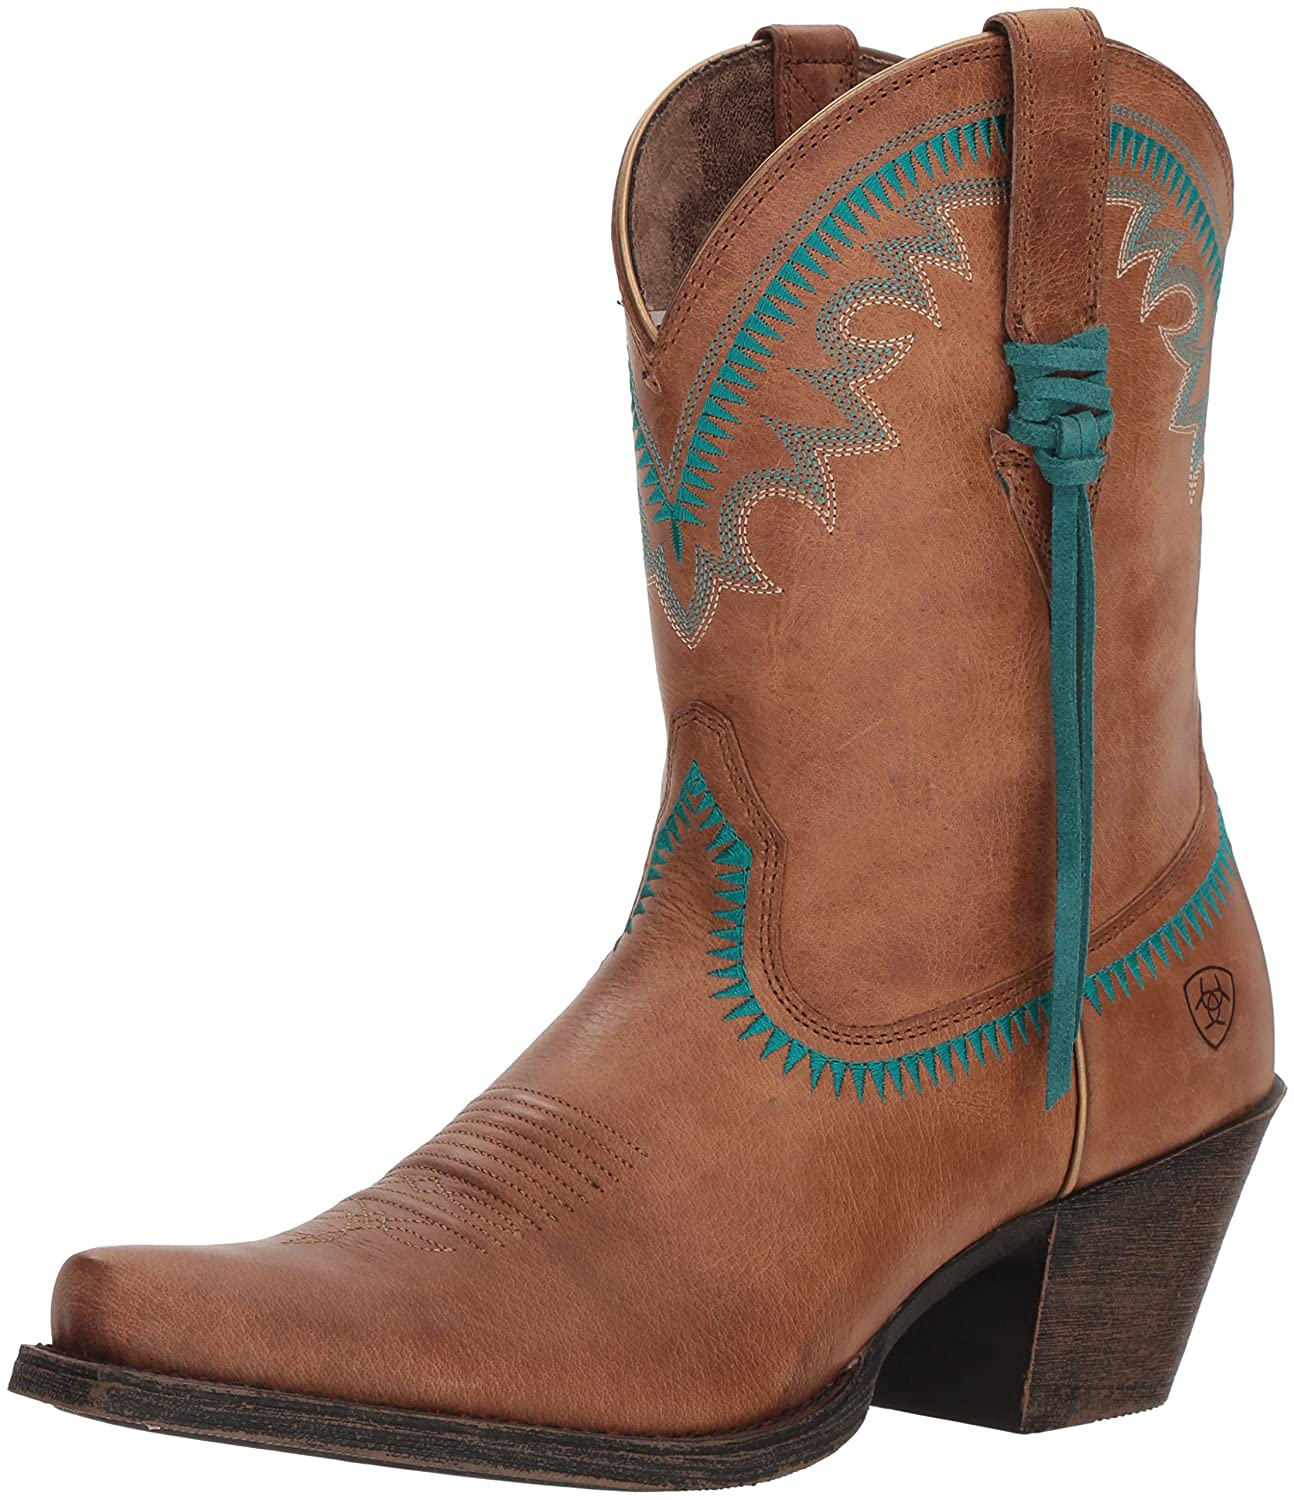 Ariat Women's Round up Aztec Western Boot B076MJSP3P 9.5 M US|Desert Sand